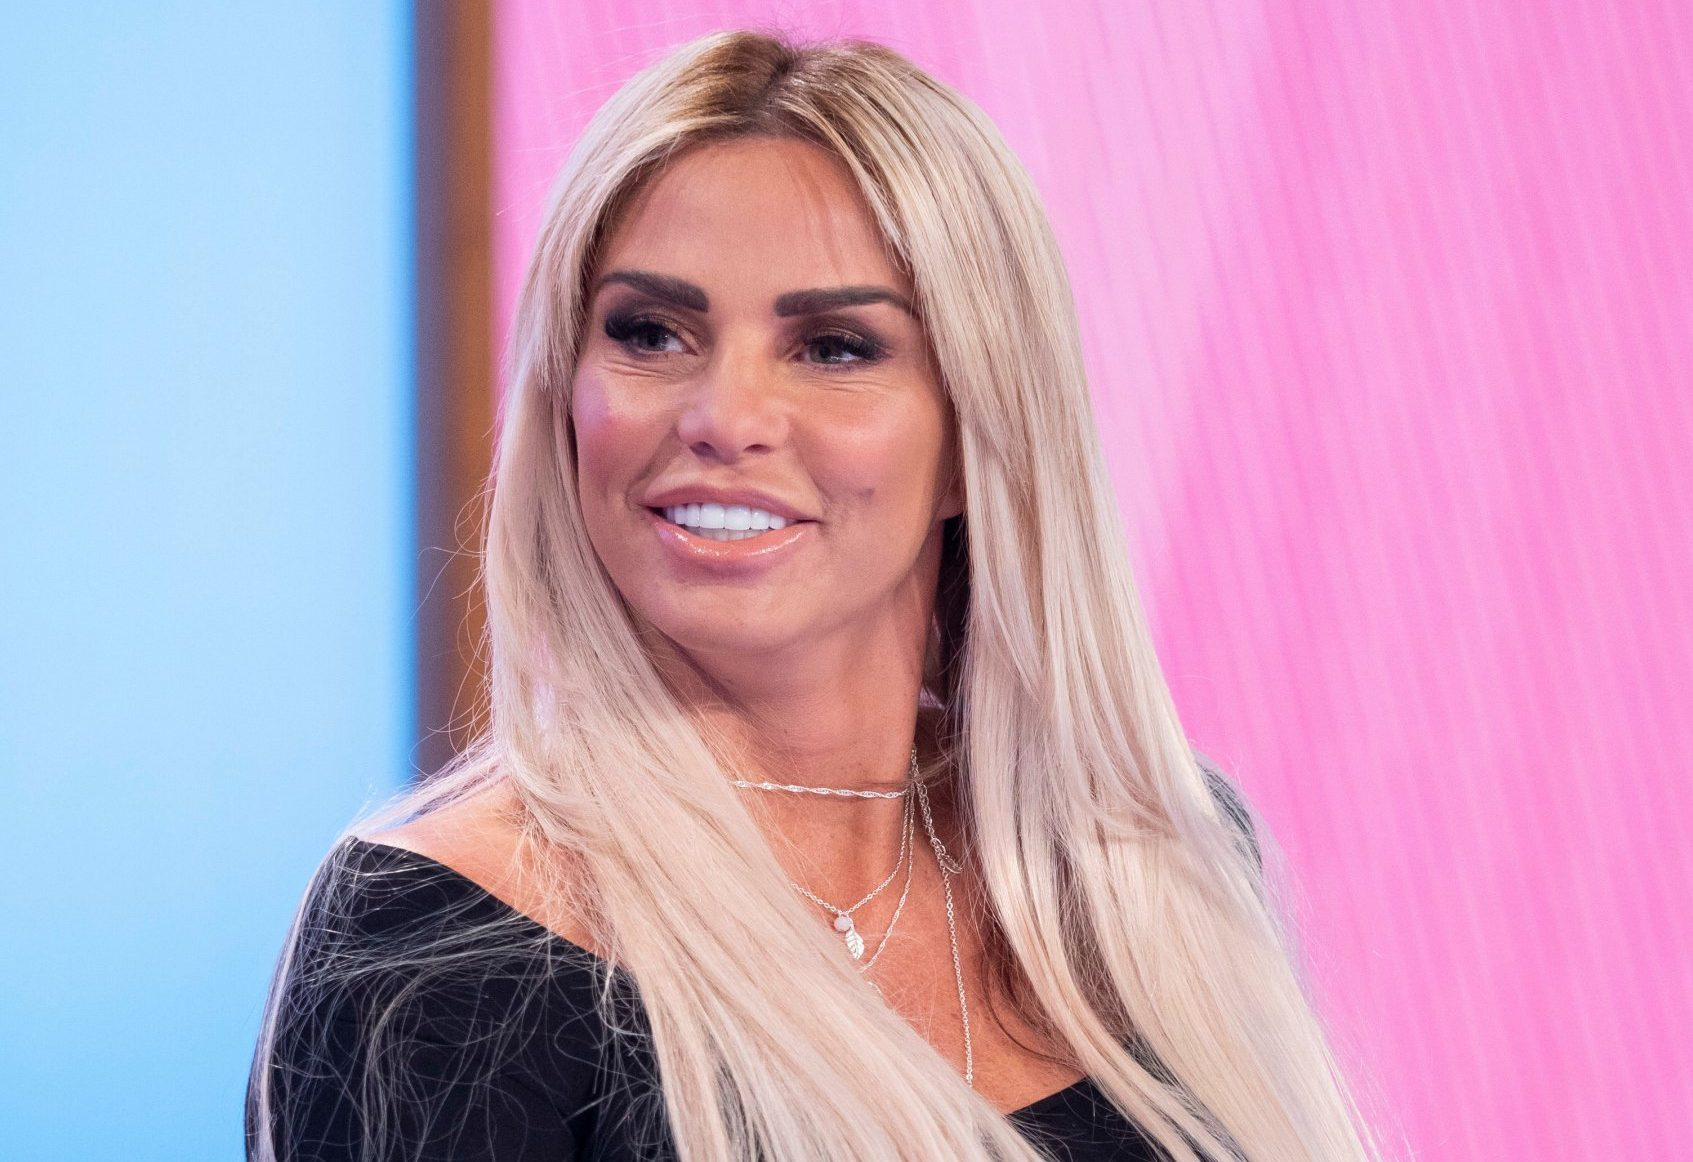 Katie Price's personal trainer 'worried' about model amid weight gain: 'It's the lowest I've ever seen her'